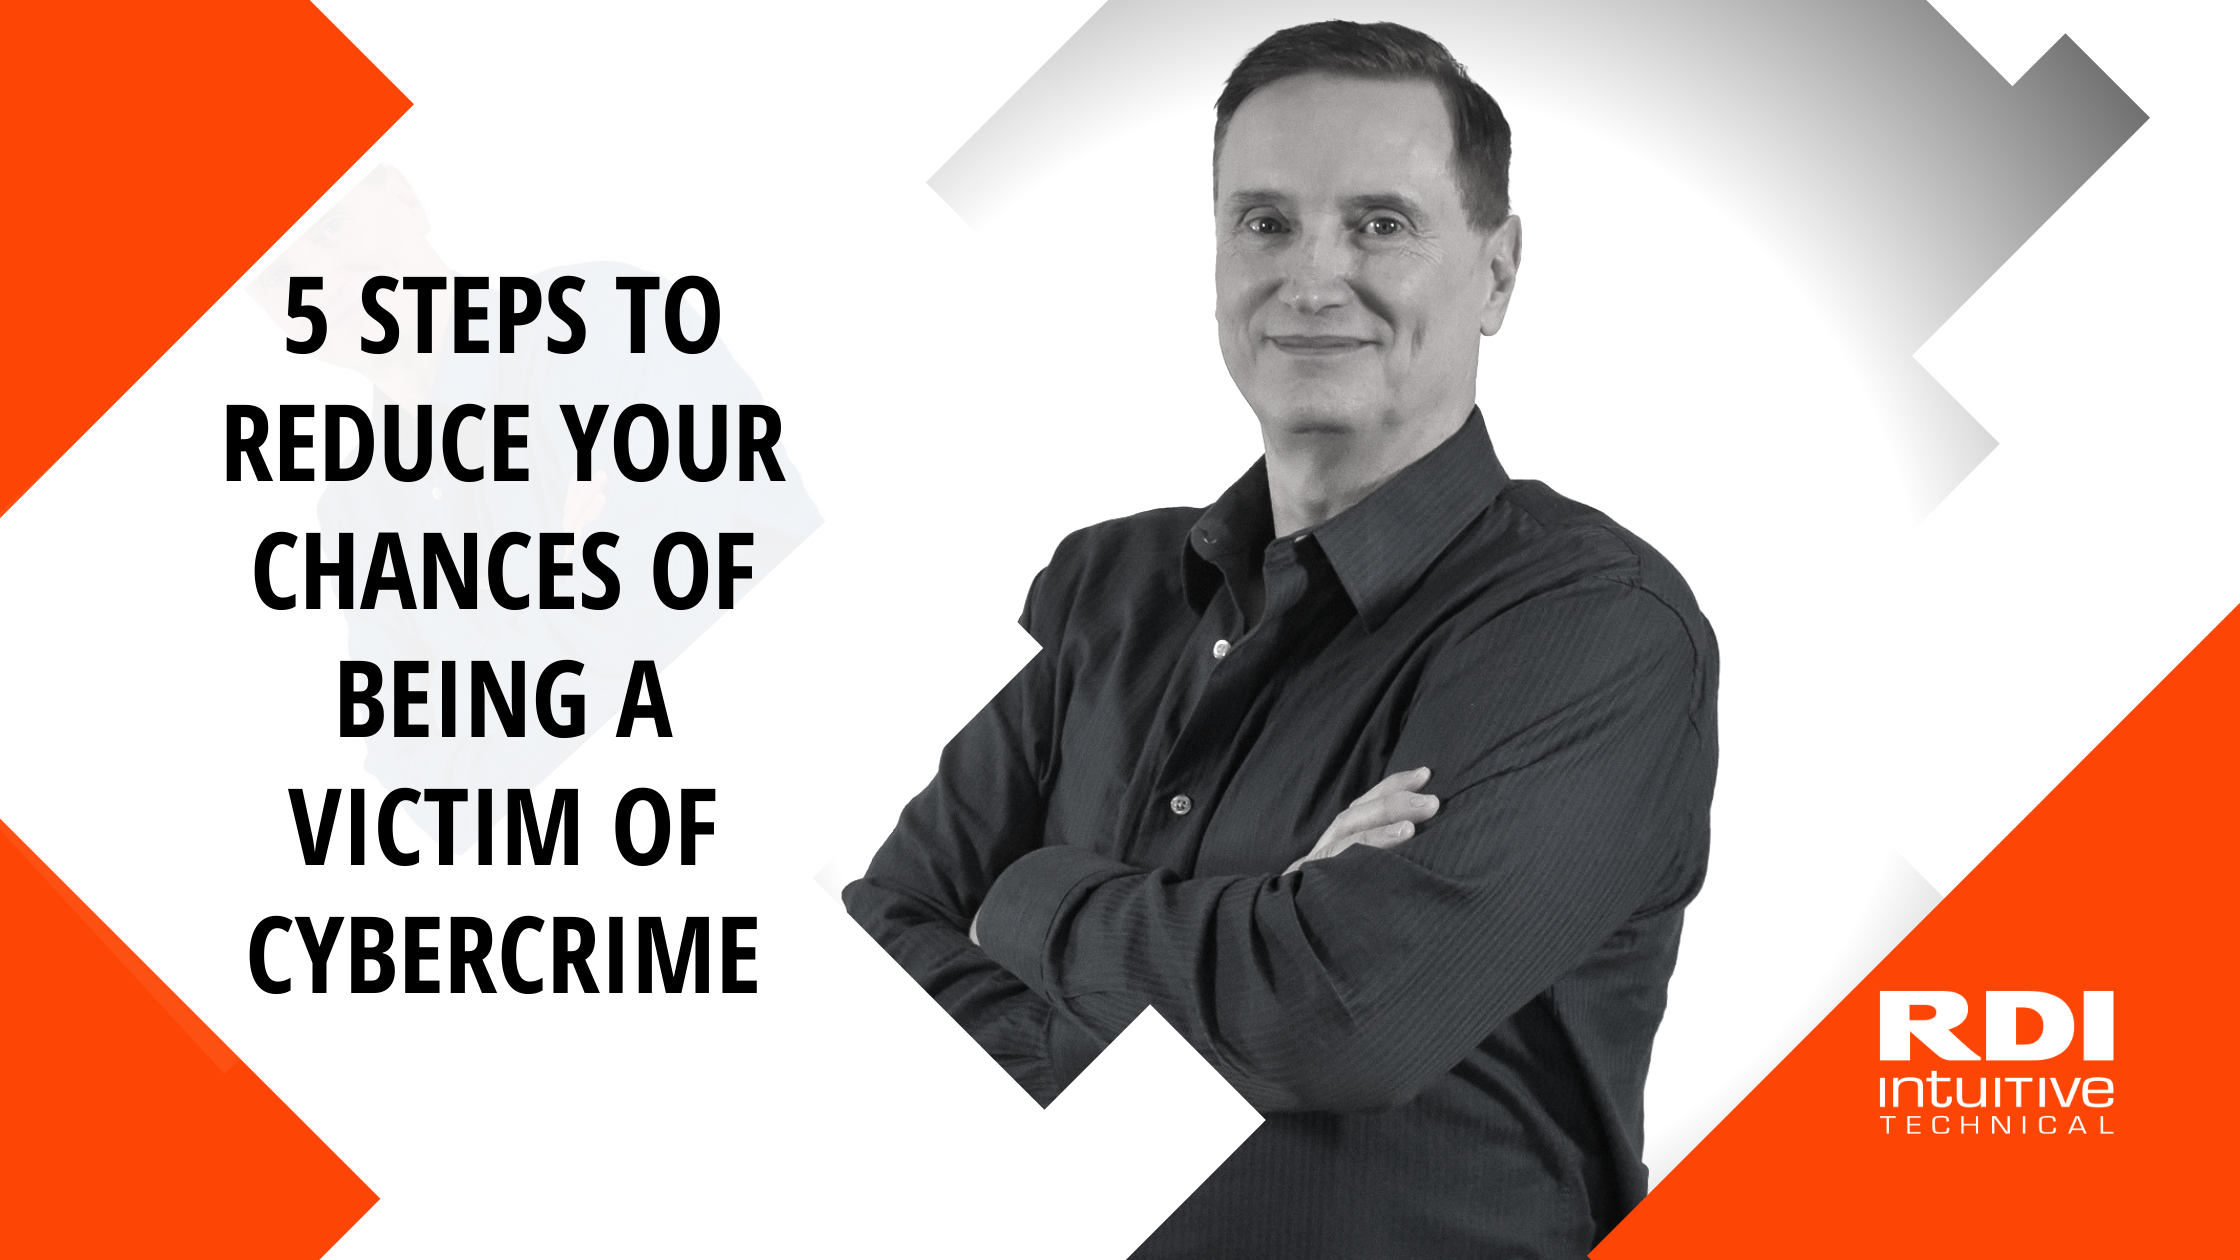 5 Steps to Reduce Your Chances of Being a Victim of Cybercrime